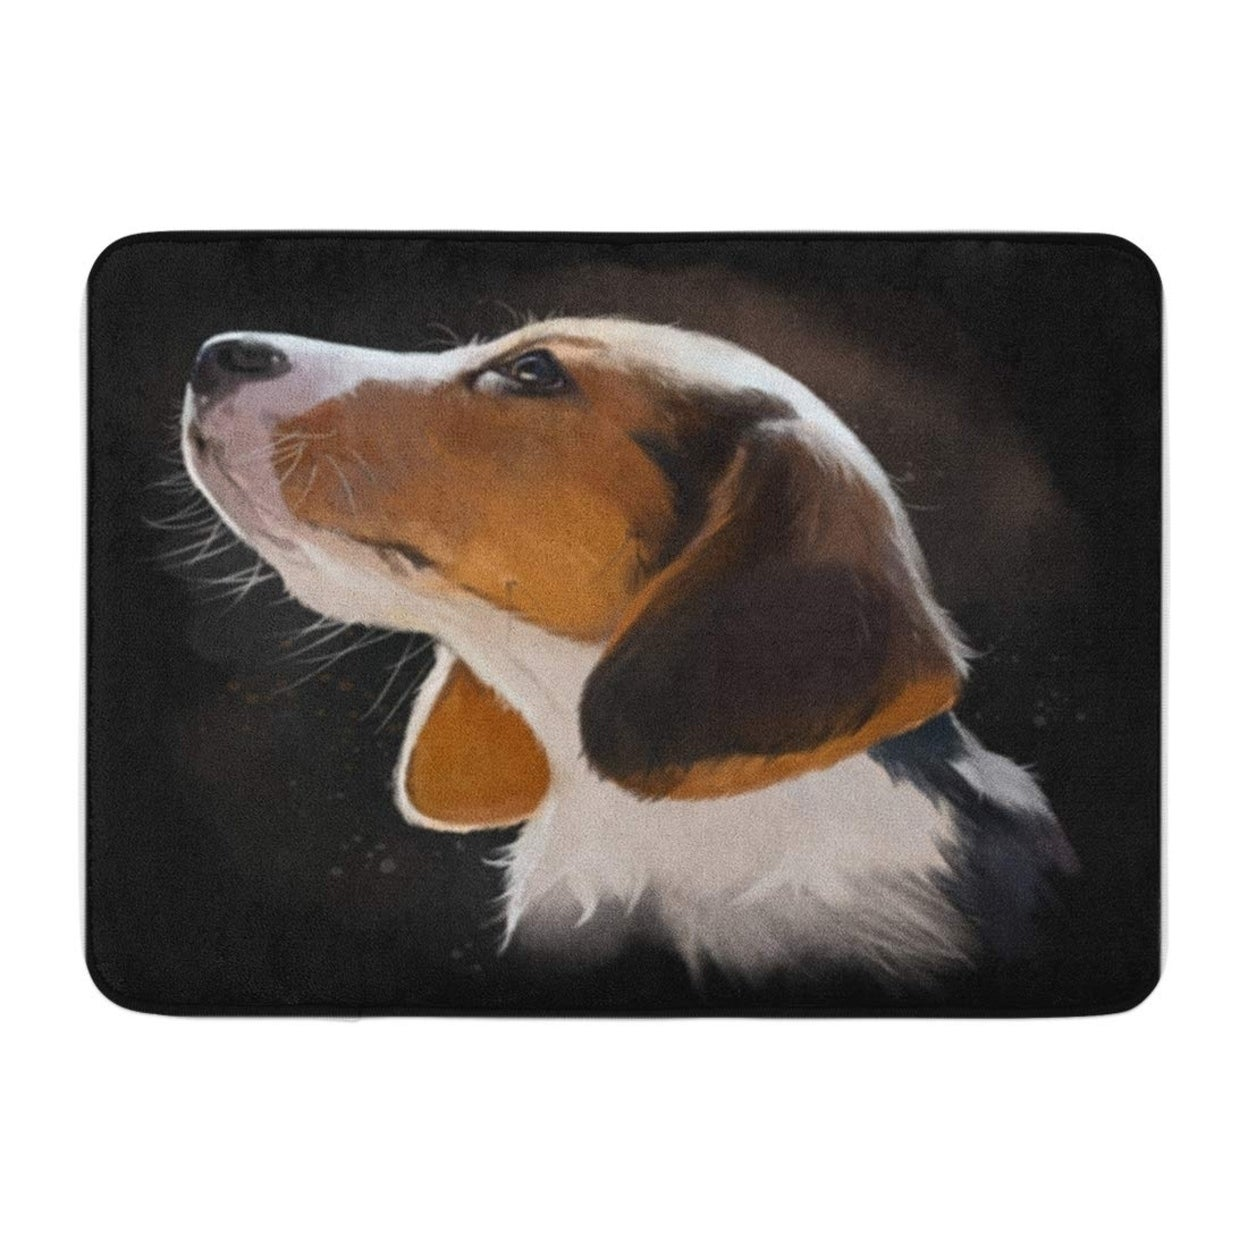 Brown Beagle Puppy Portrait Watercolor Painting Adorable Beautiful Doormat Floor Rug Bath Mat 30x18 Inch Multi On Sale Overstock 31778650